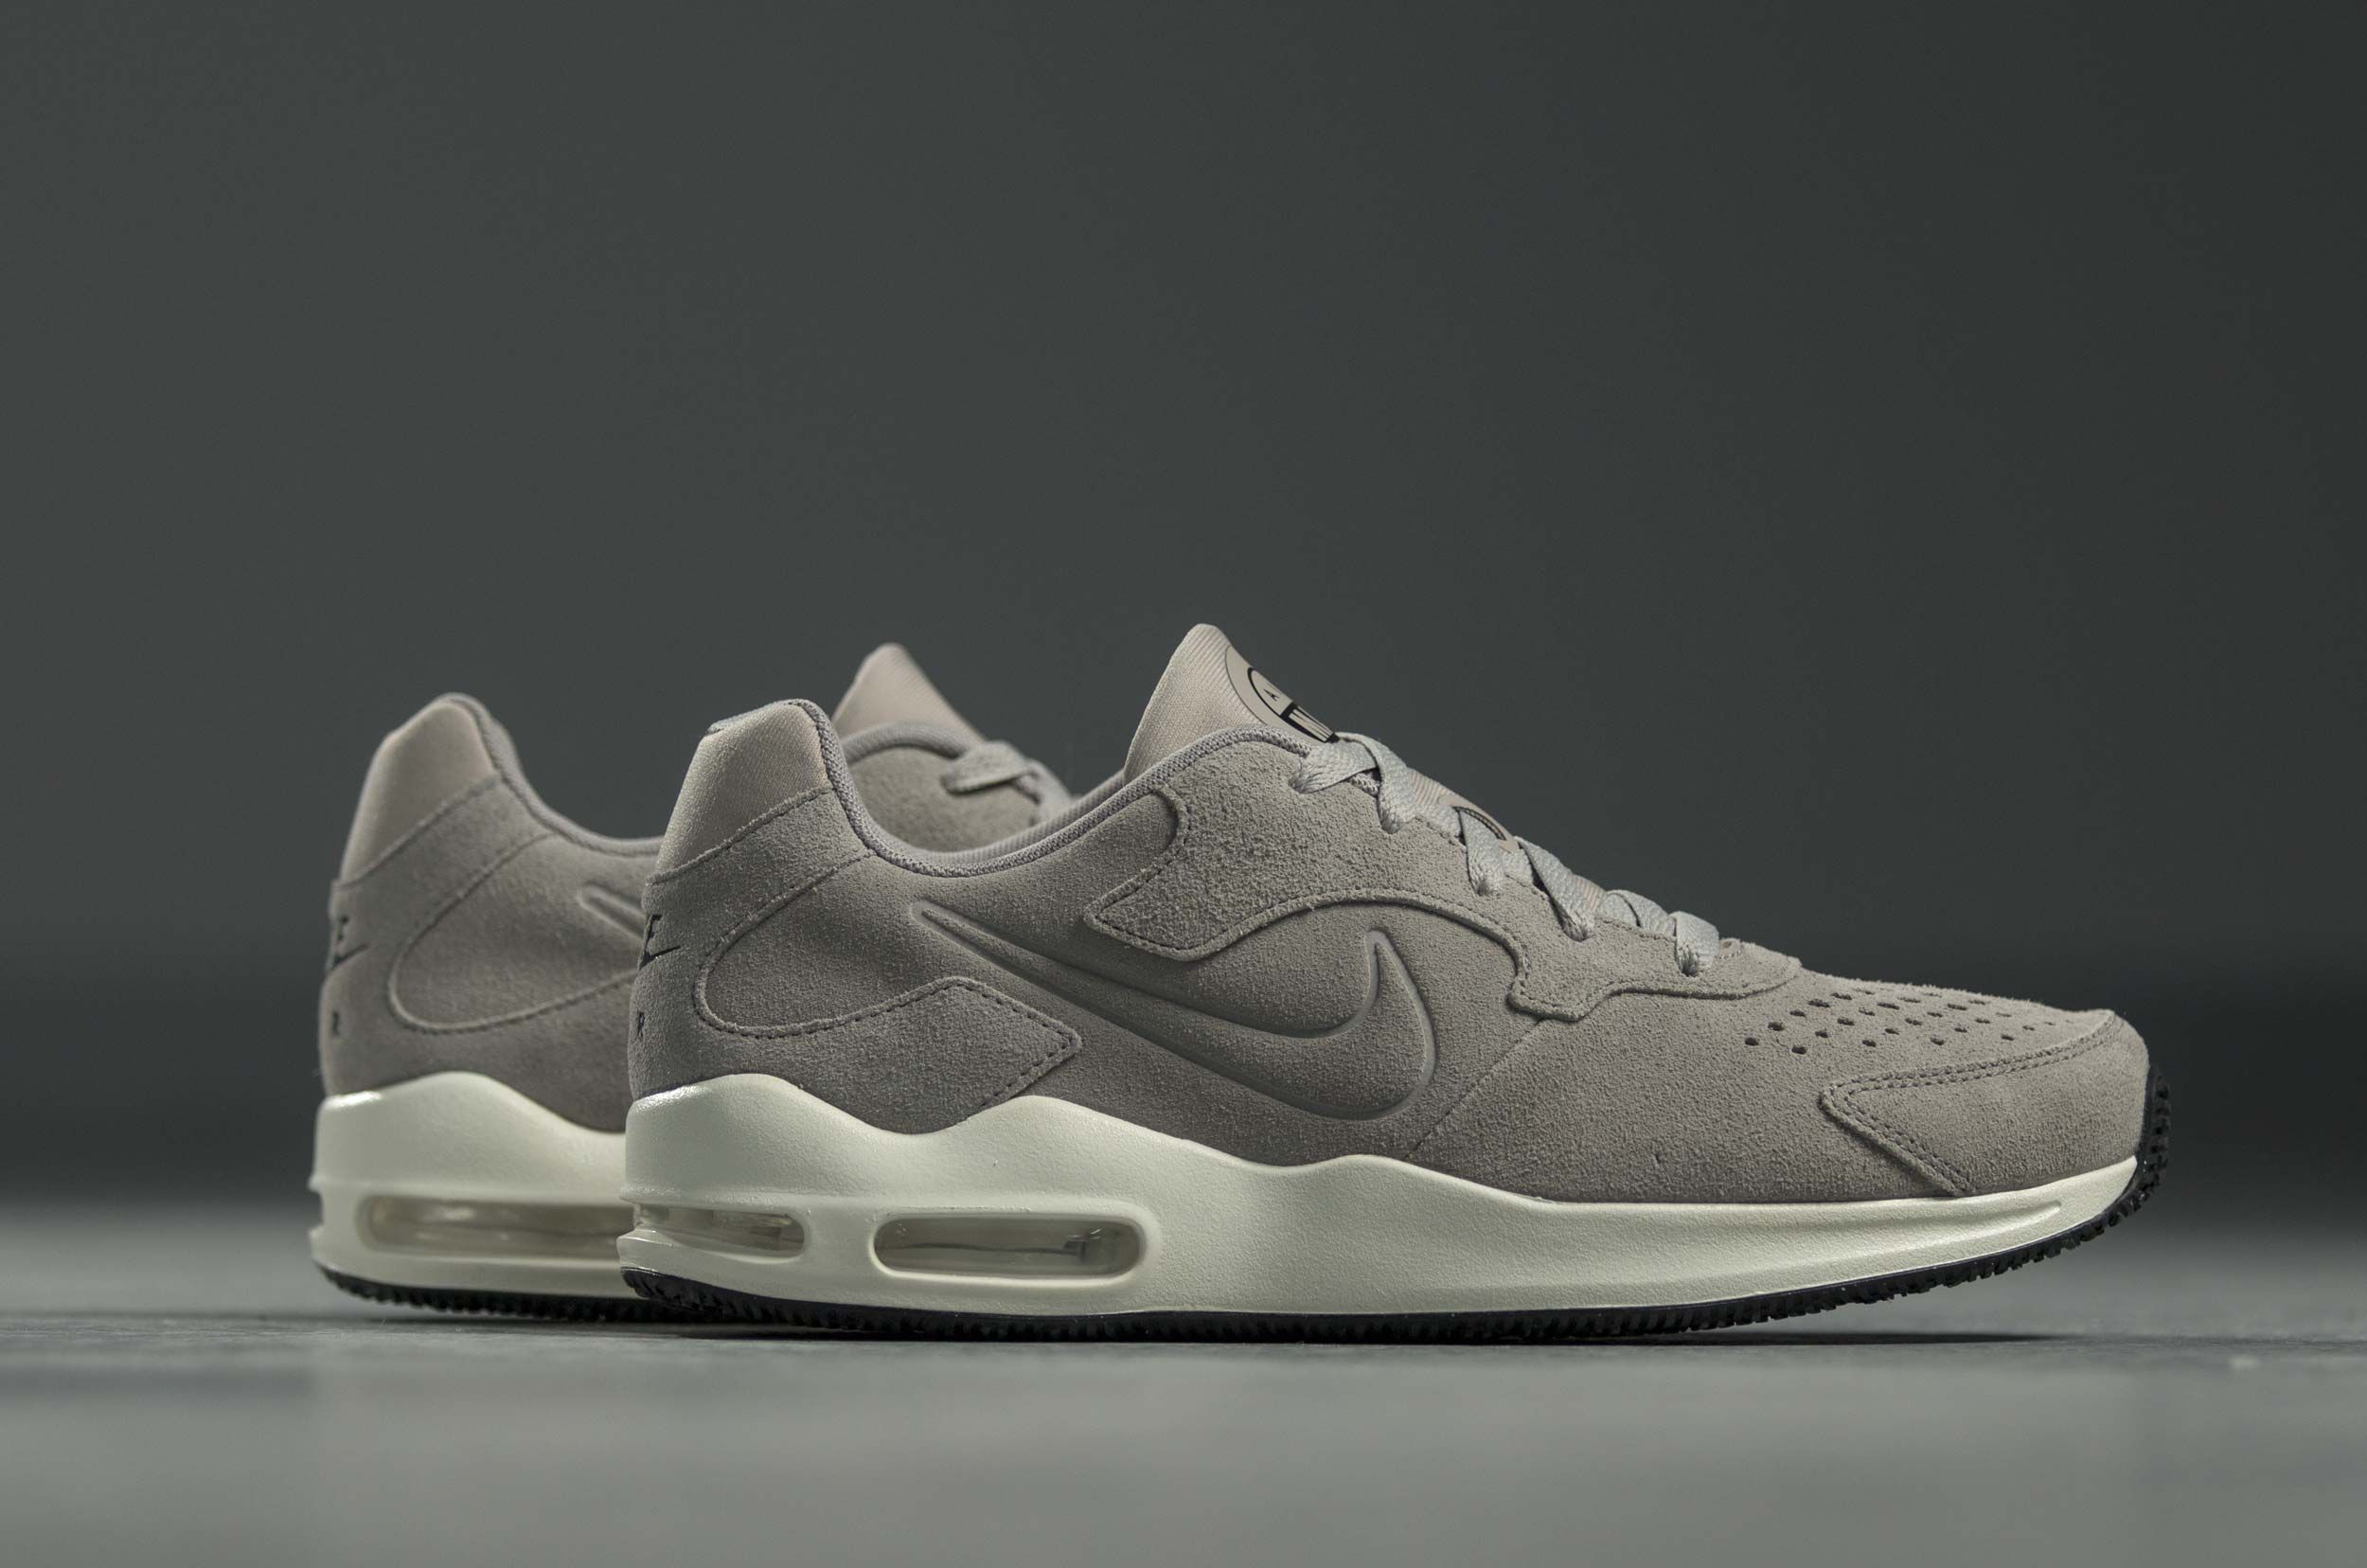 official photos 020e8 a2895 NIKE AIR MAX GUILE PREMIUM 916770-002 Γκρί